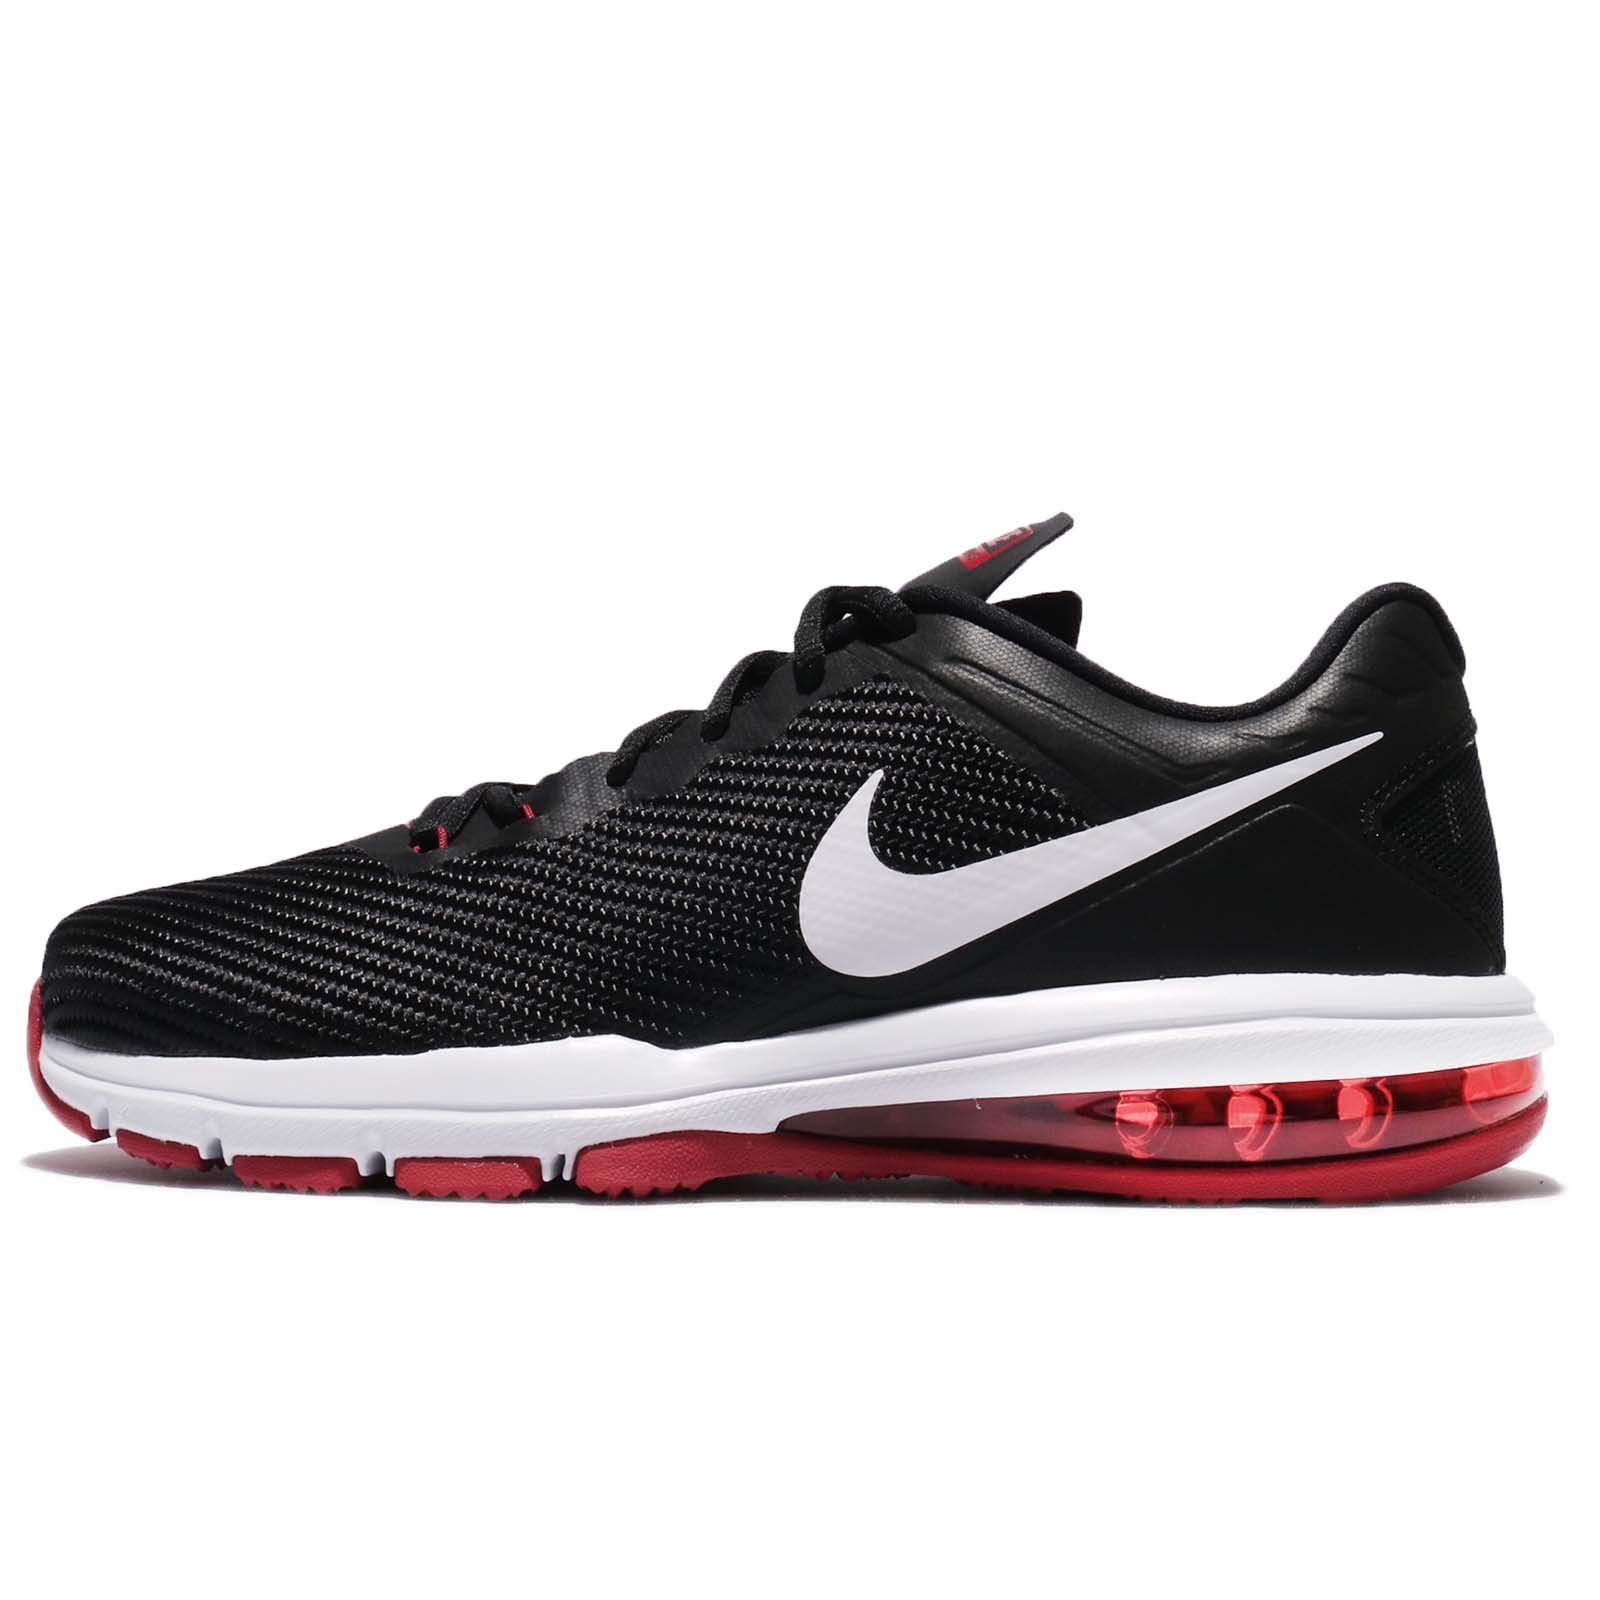 ea035c3815 Galleon - Nike Men's Air Max Full Ride TR 1.5 Training Shoe  Black/White/Tough Red Size 9 M US